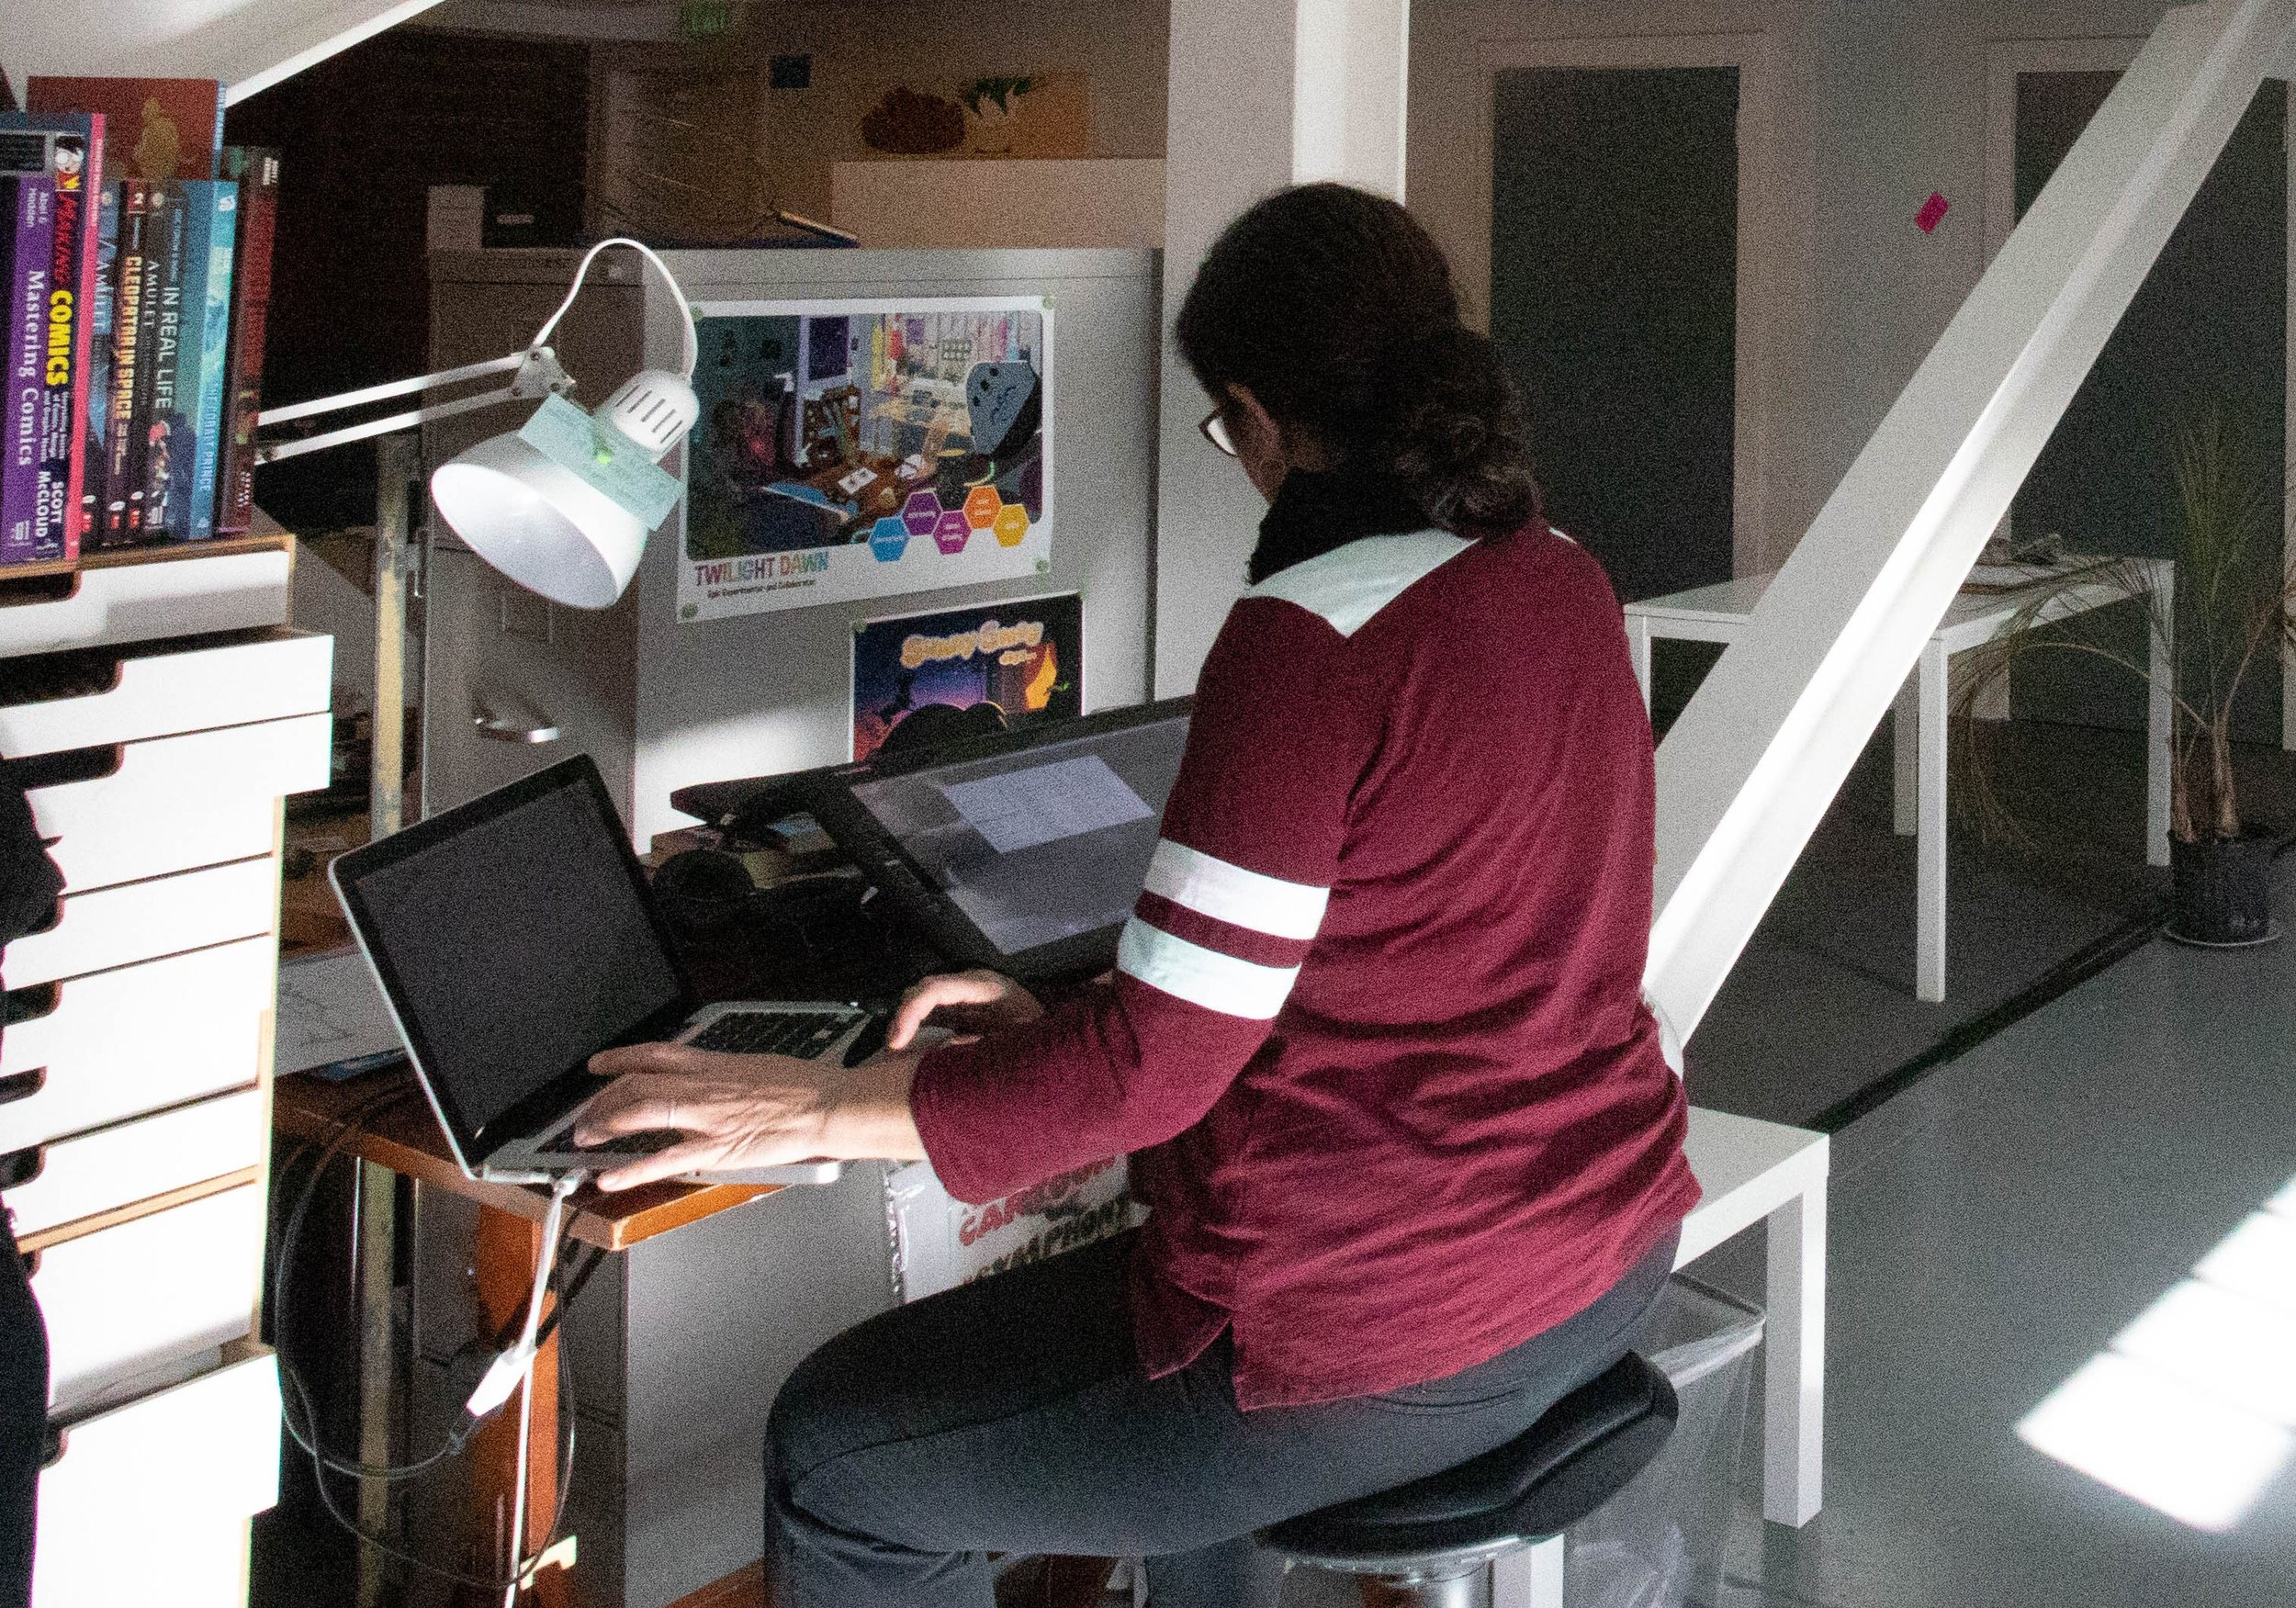 downstairs_1.jpg